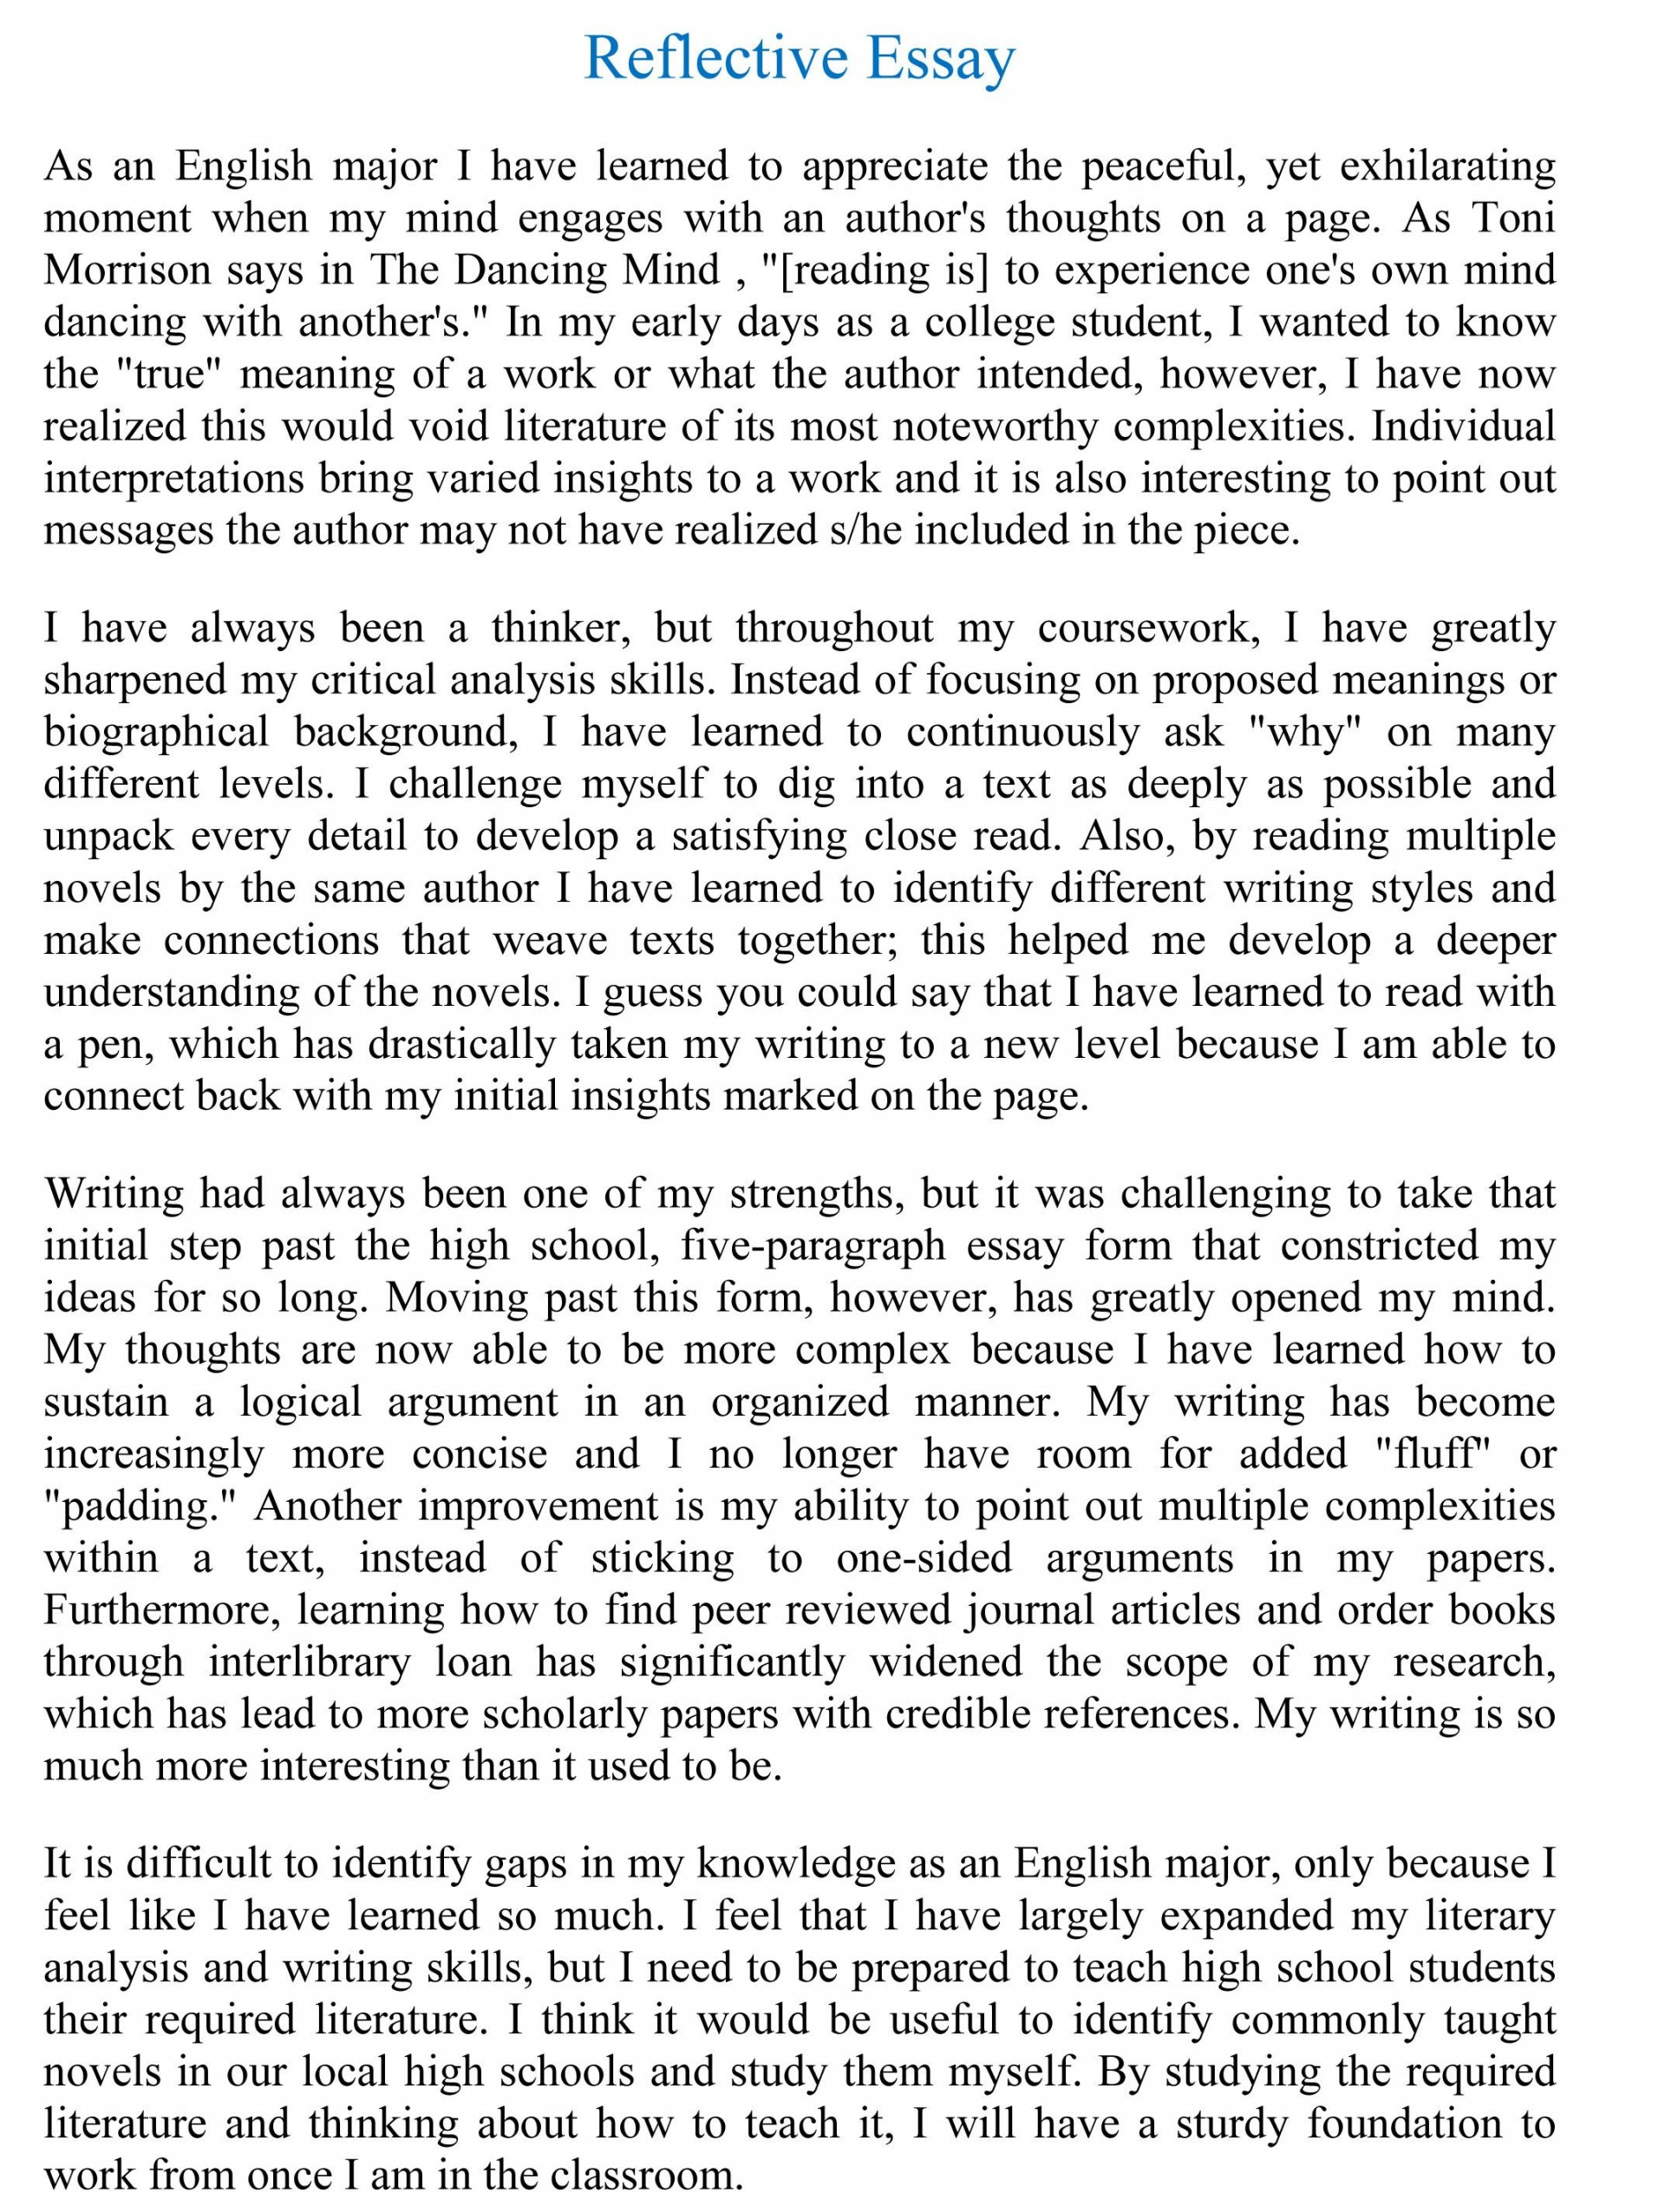 004 Essay Example Unforgettable Reflective Examples About Life Pdf High School Students Apa 1920